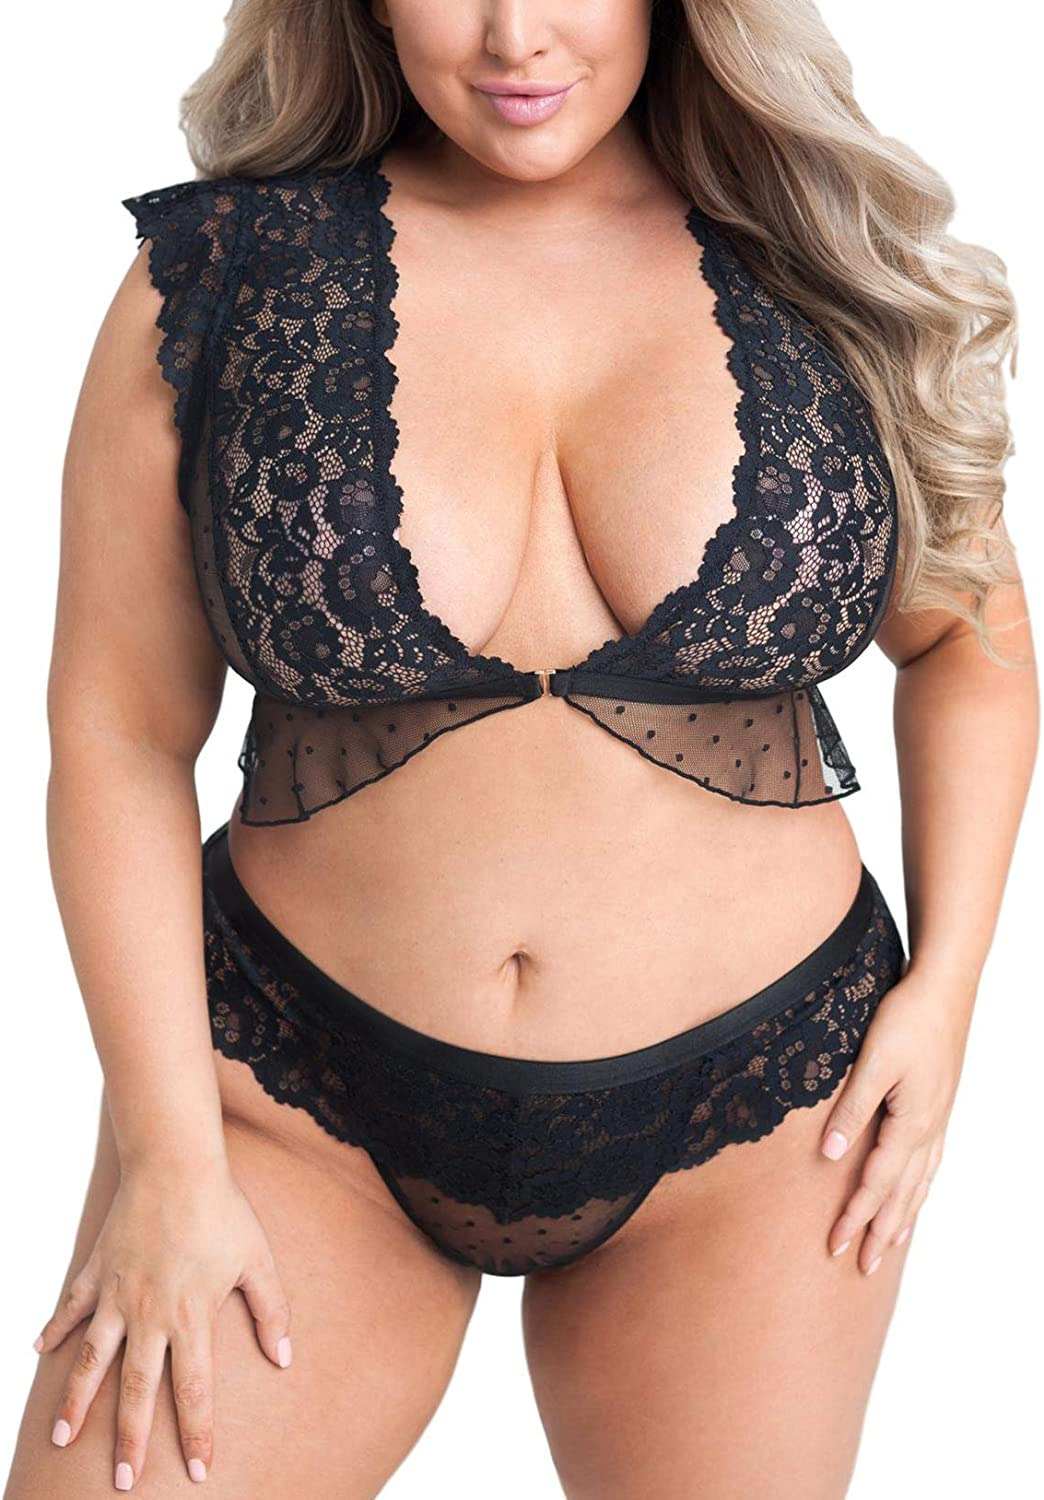 EVELUST Plus Size Front-Open Lingerie for Women Polka Ruffle Backless Cami Thong 2 Piece Underwear Naughty Bra and Panty